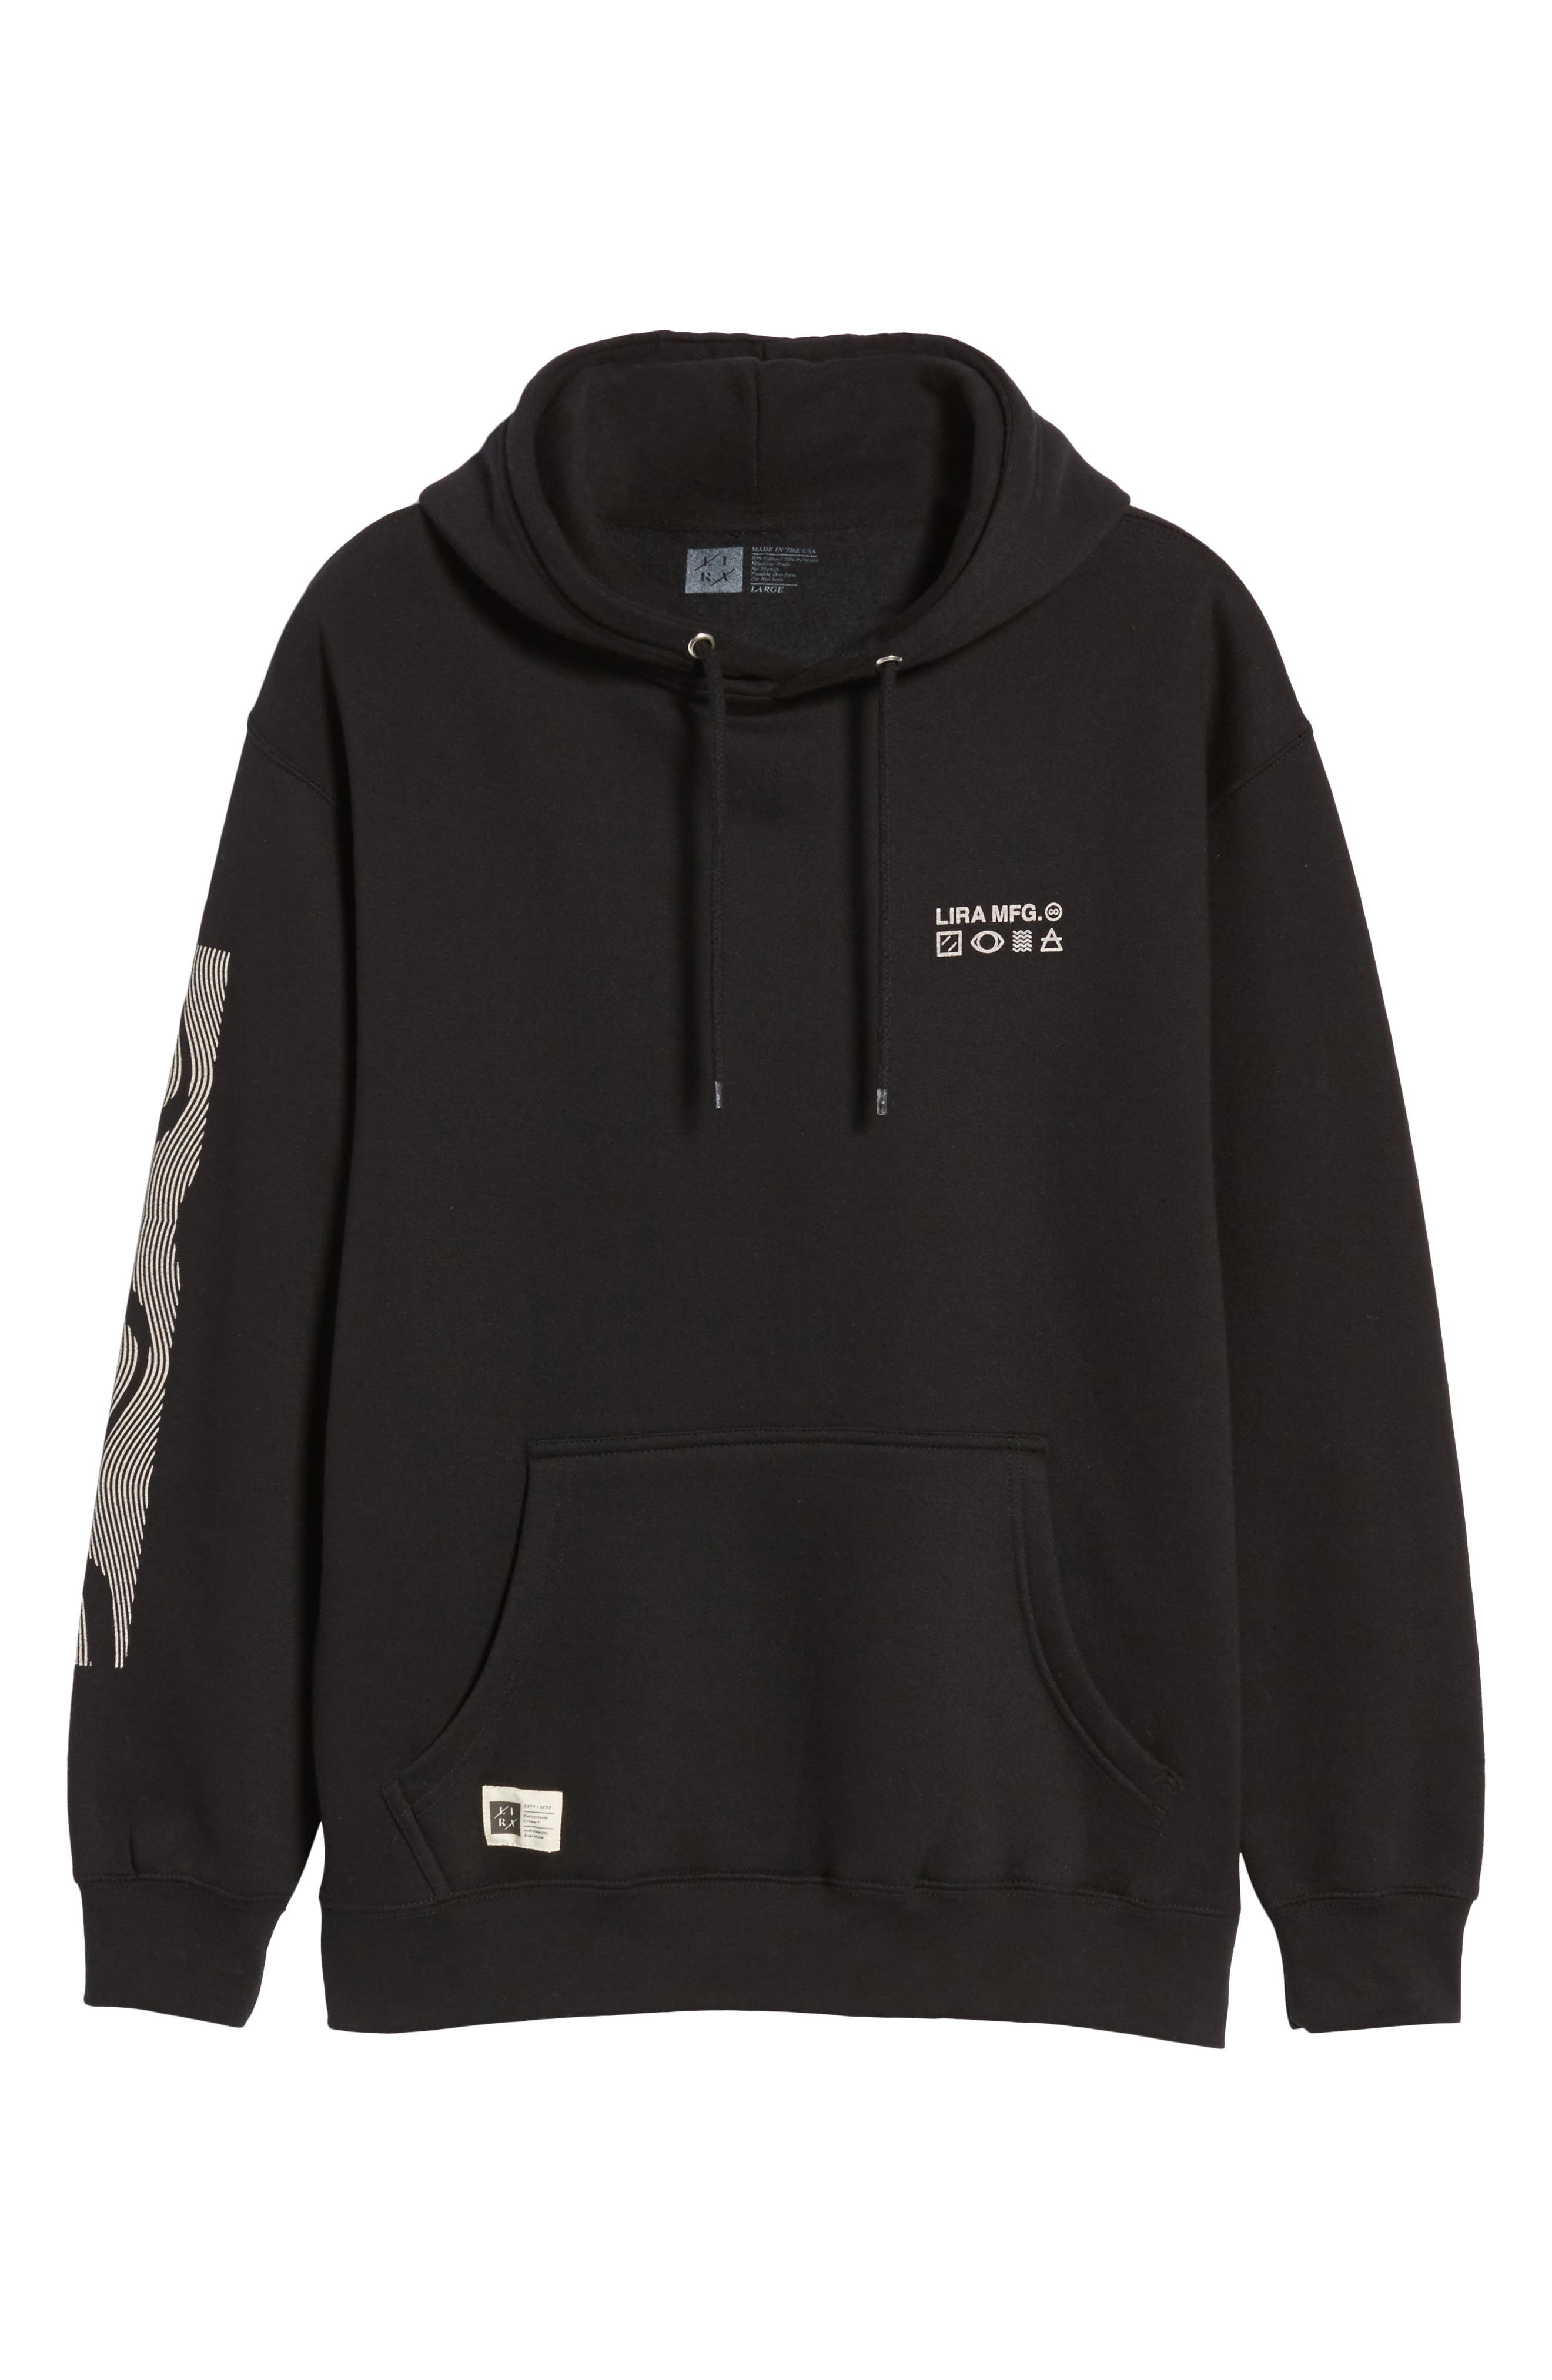 Coil Graphic Hoodie,                             Alternate thumbnail 6, color,                             001